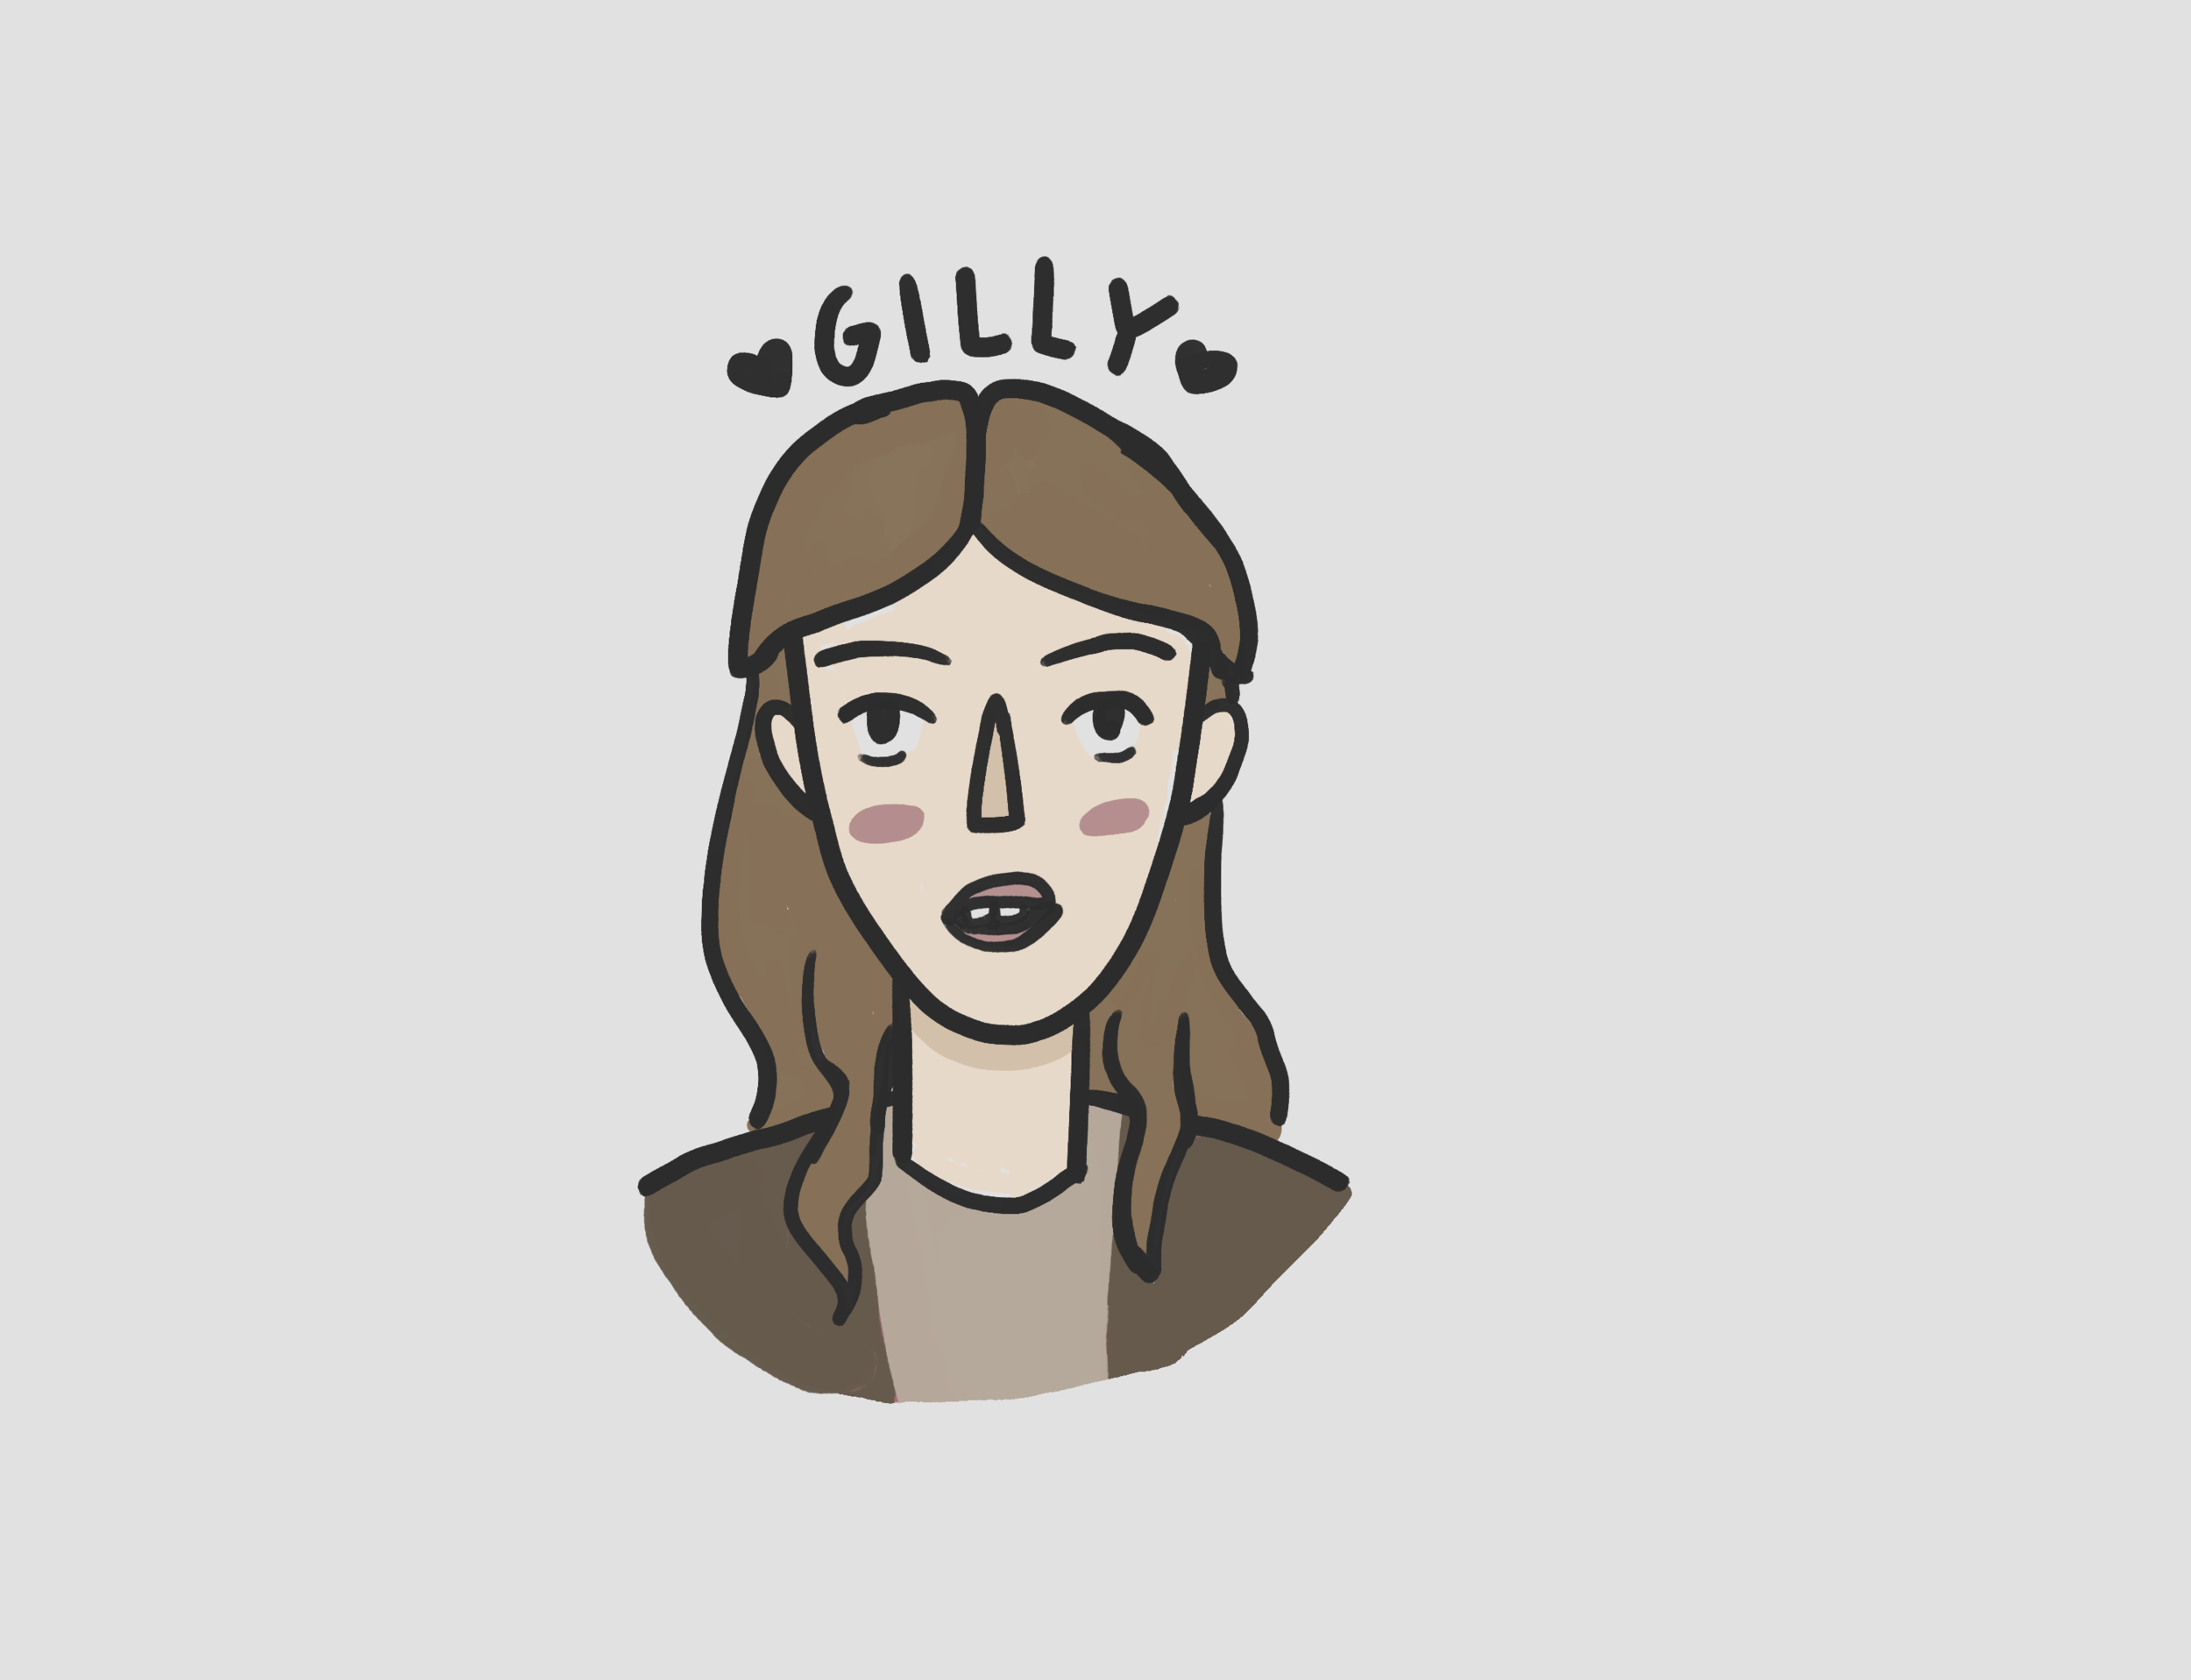 69 gilly.png